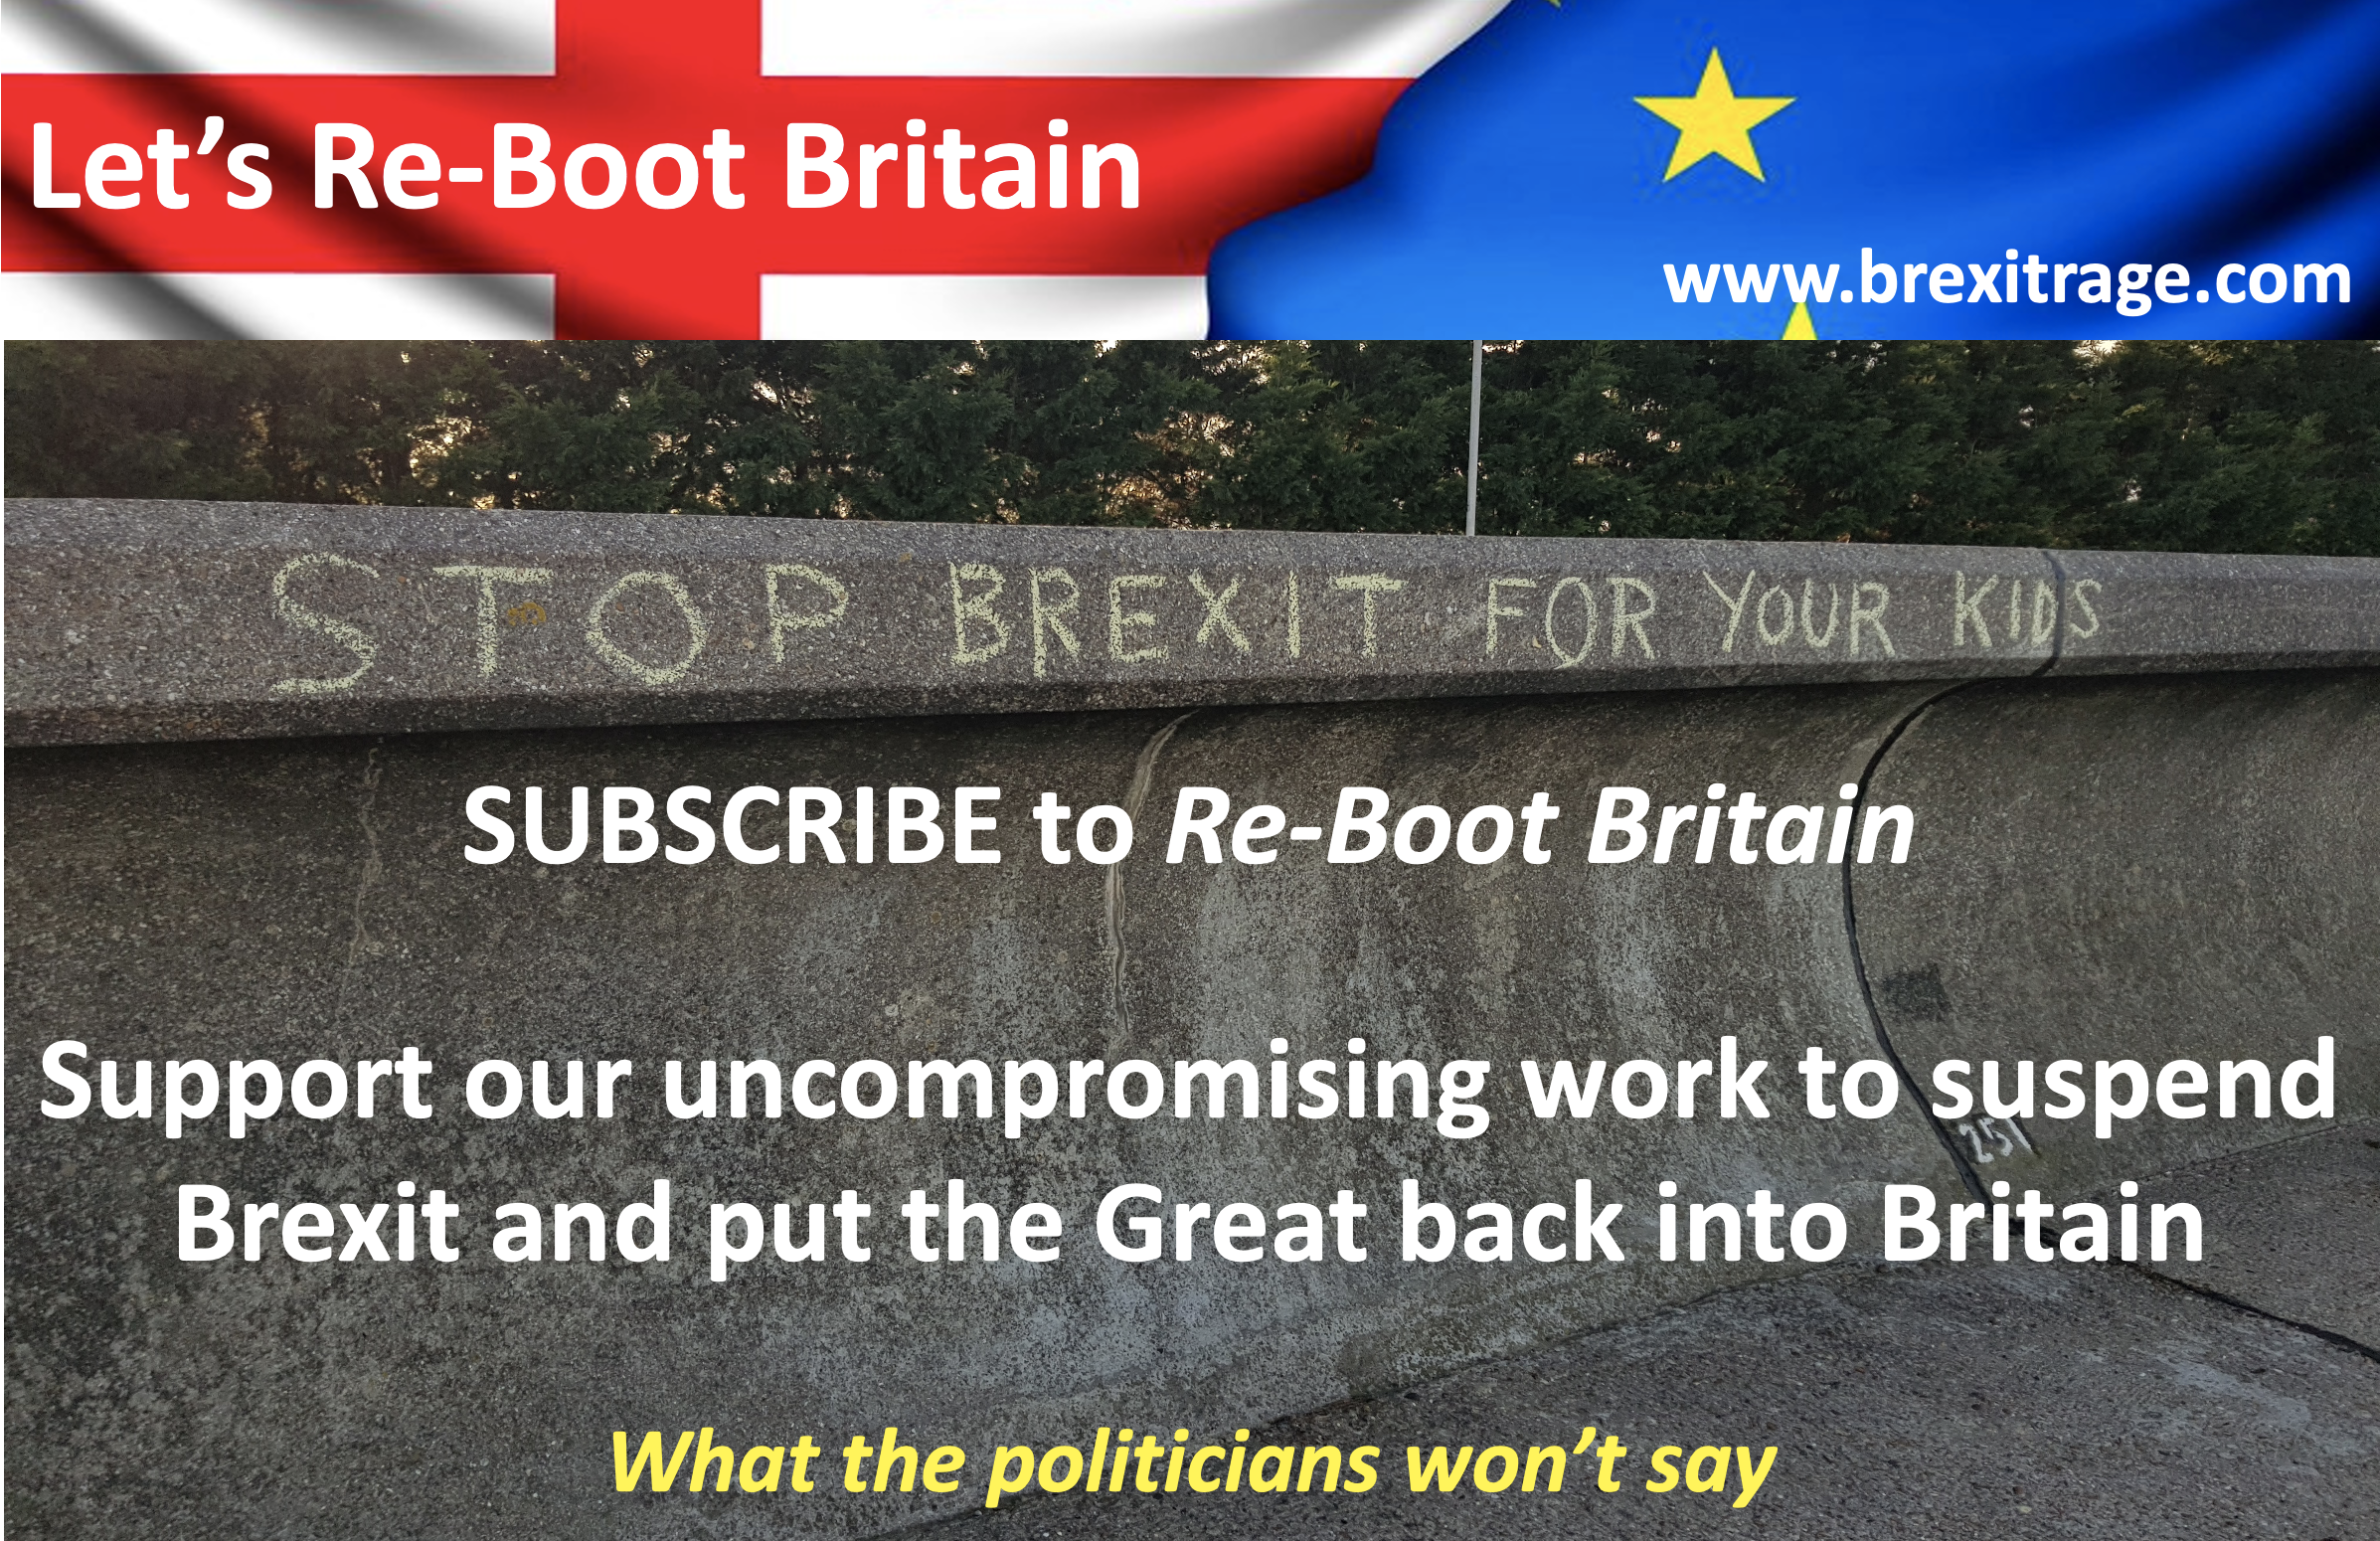 Support Re-Boot Britain by clicking on the image